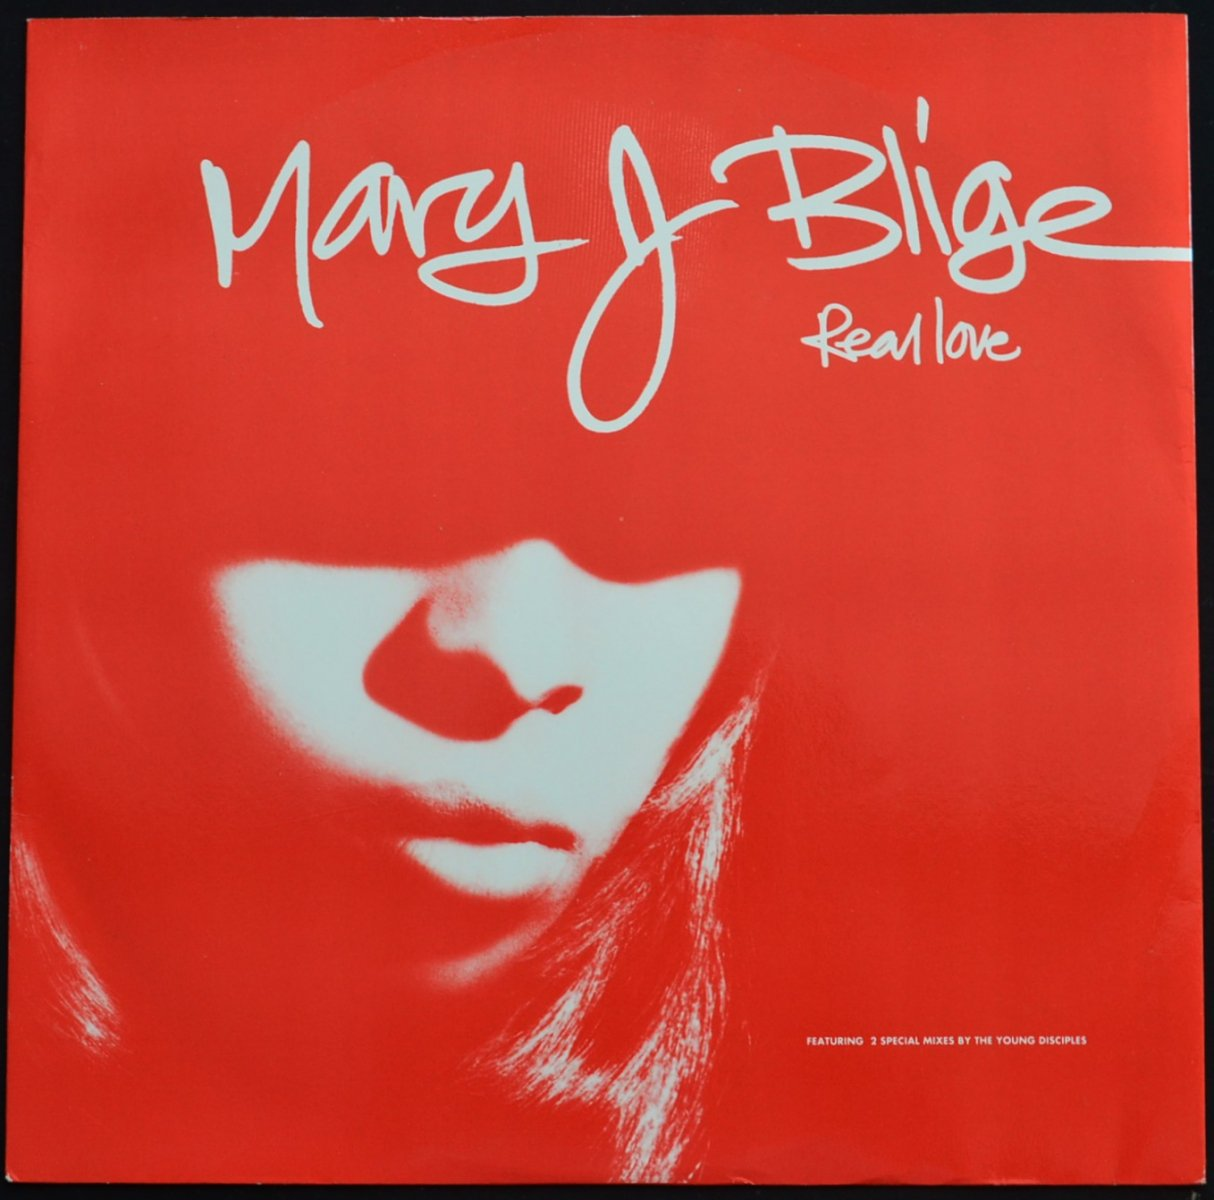 MARY J. BLIGE / REAL LOVE (12